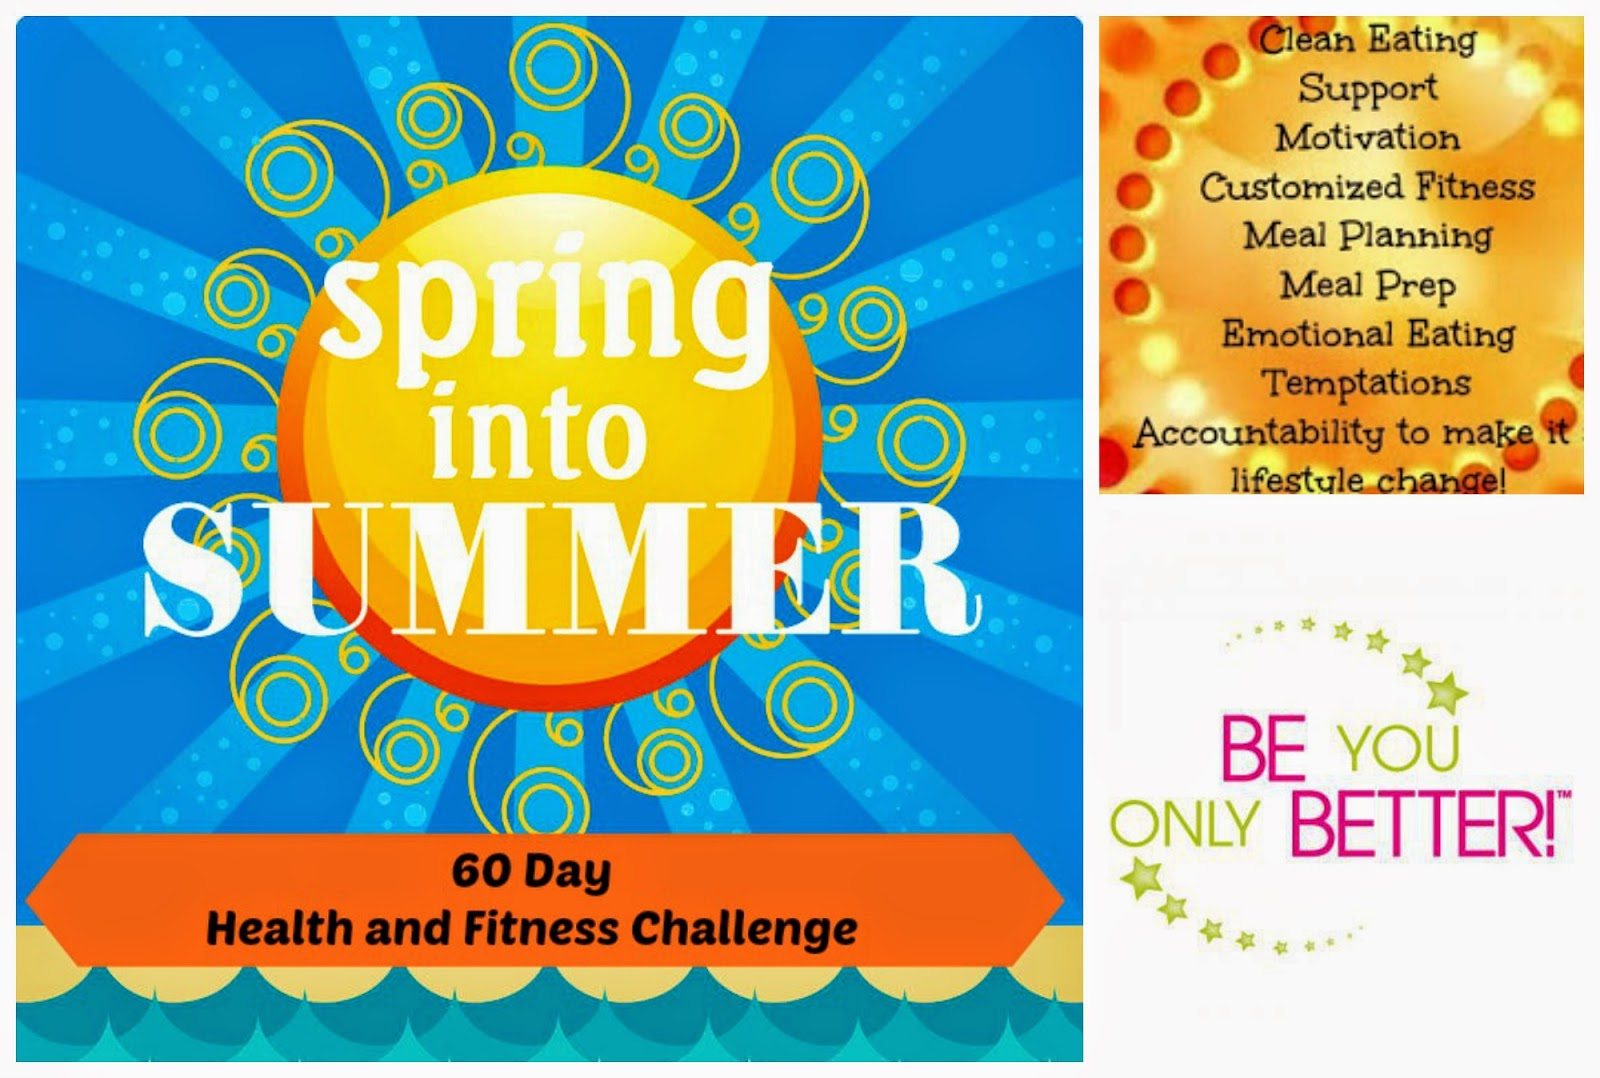 be you only better, start over, clean slate, spring into summer health and fitness challenge, get healthy, be happy, get fit